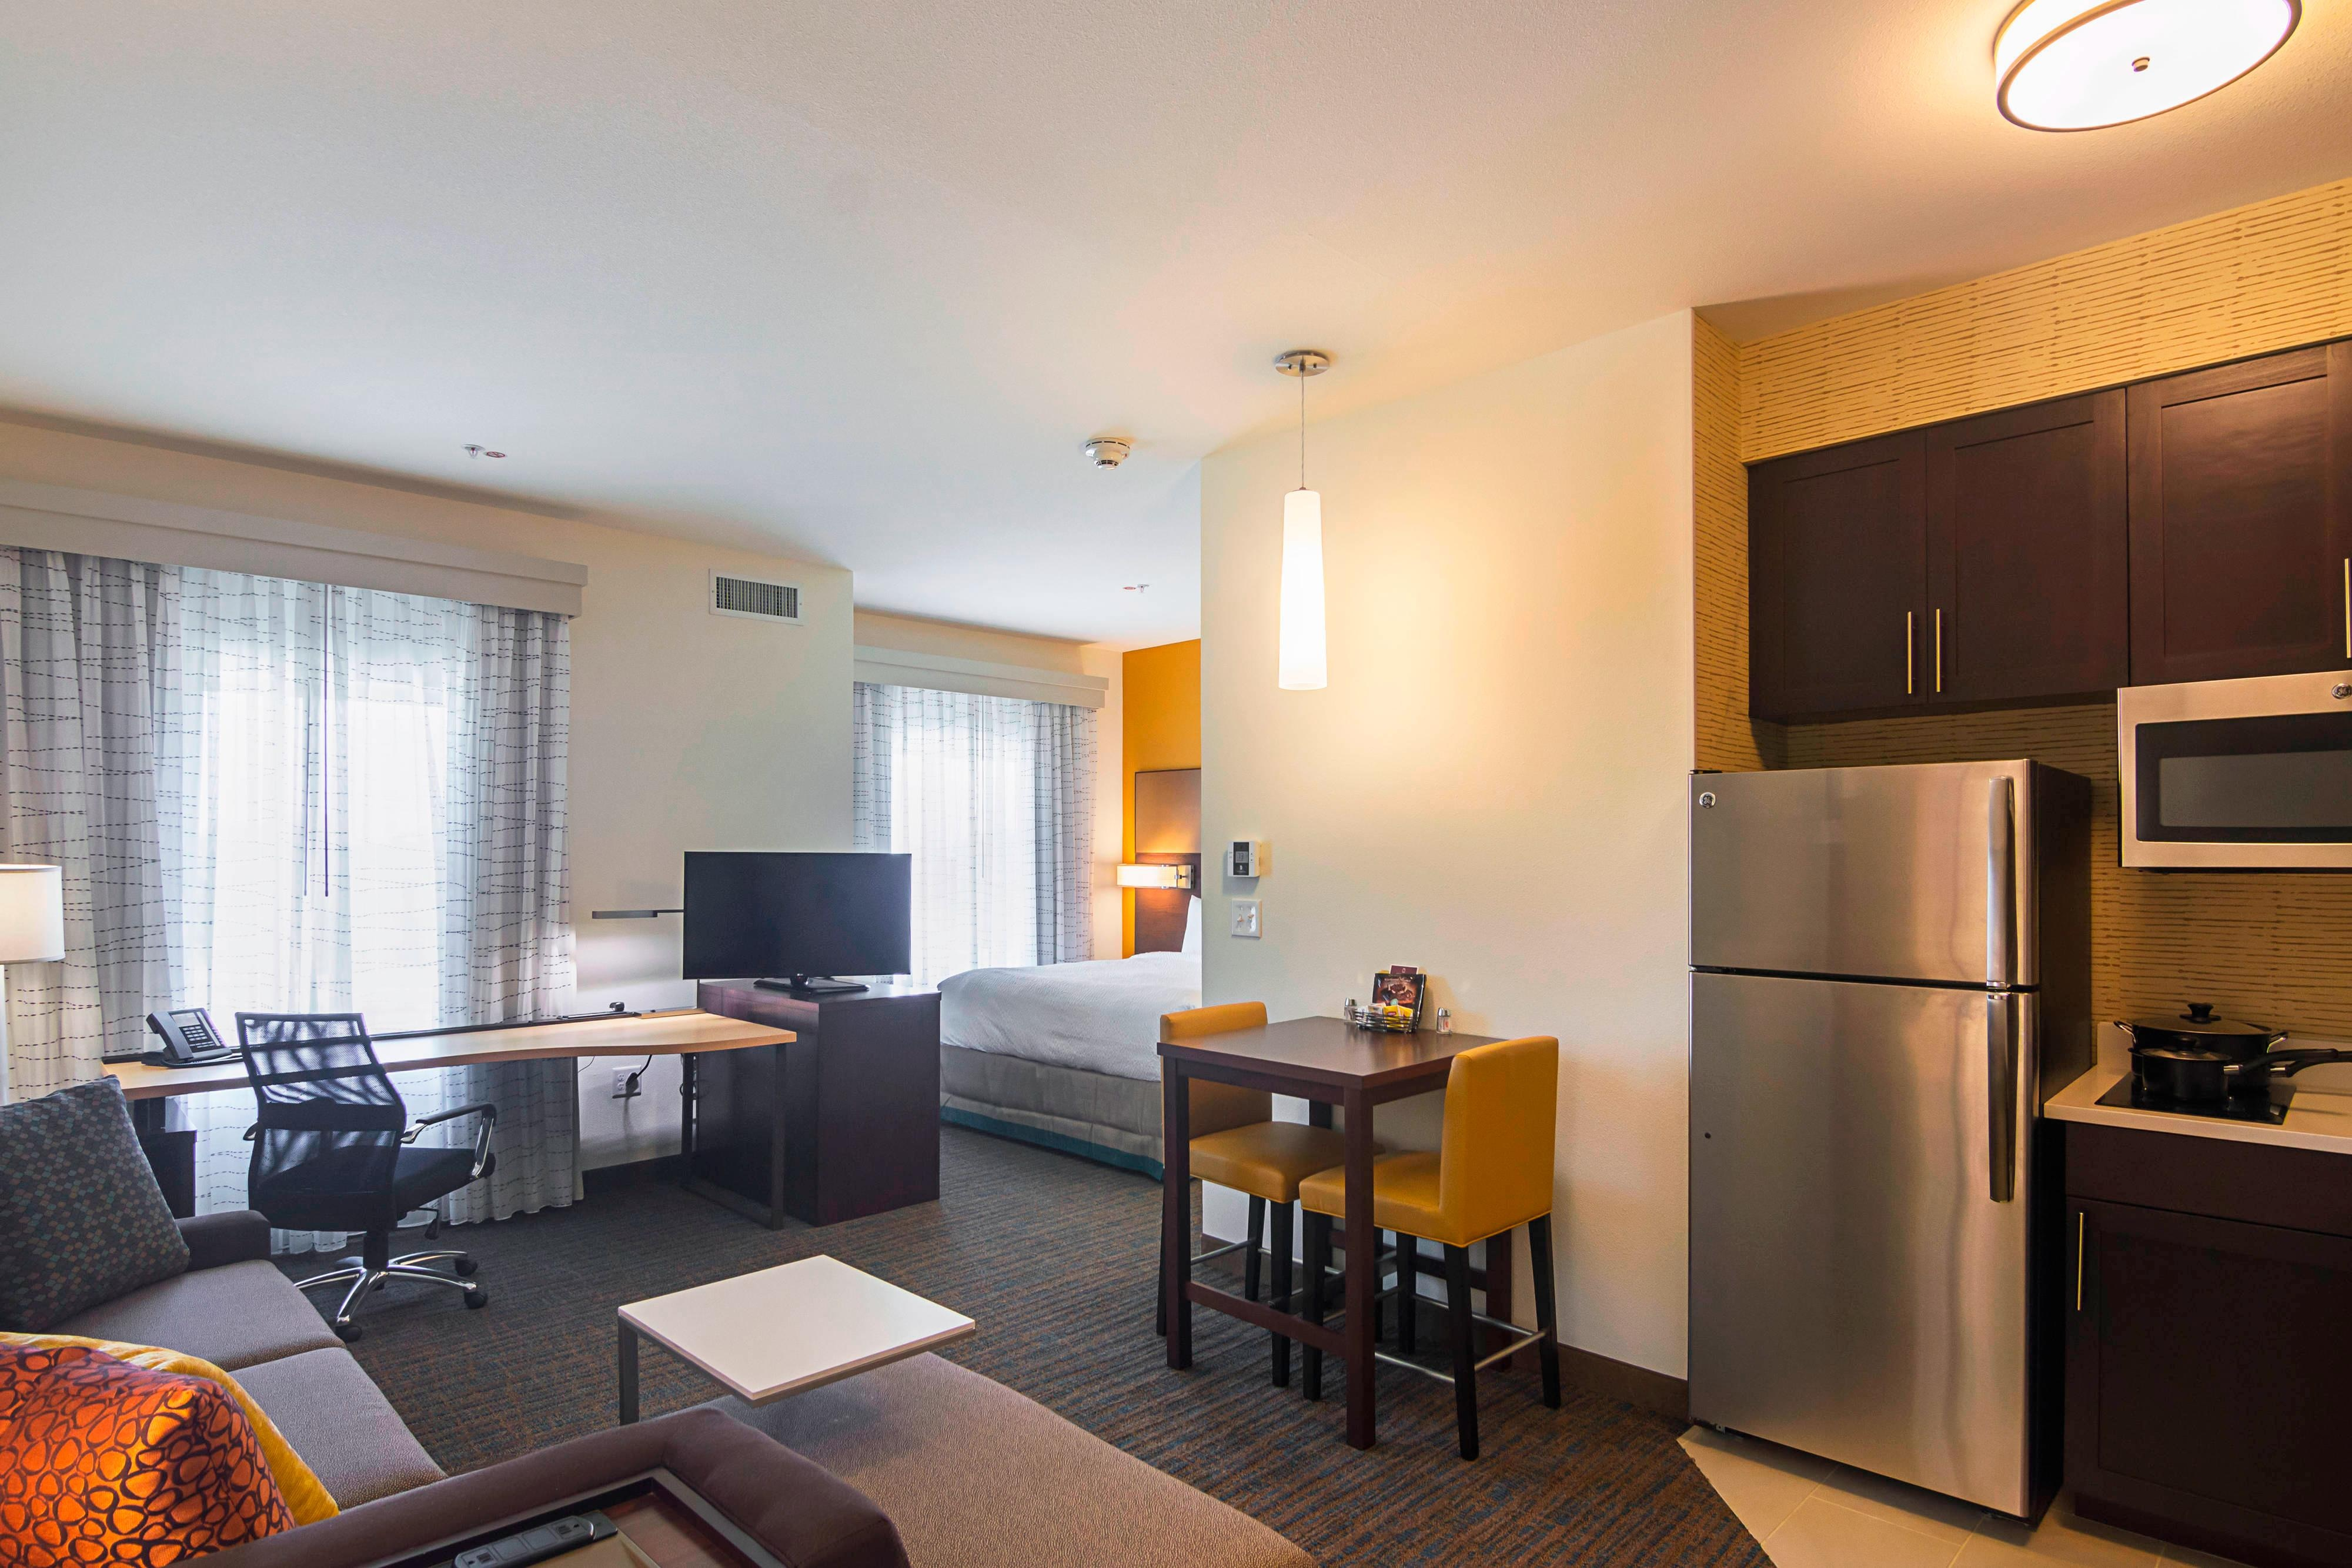 Extended Stay Denton Hotel Rooms And Suites Residence Inn Denton